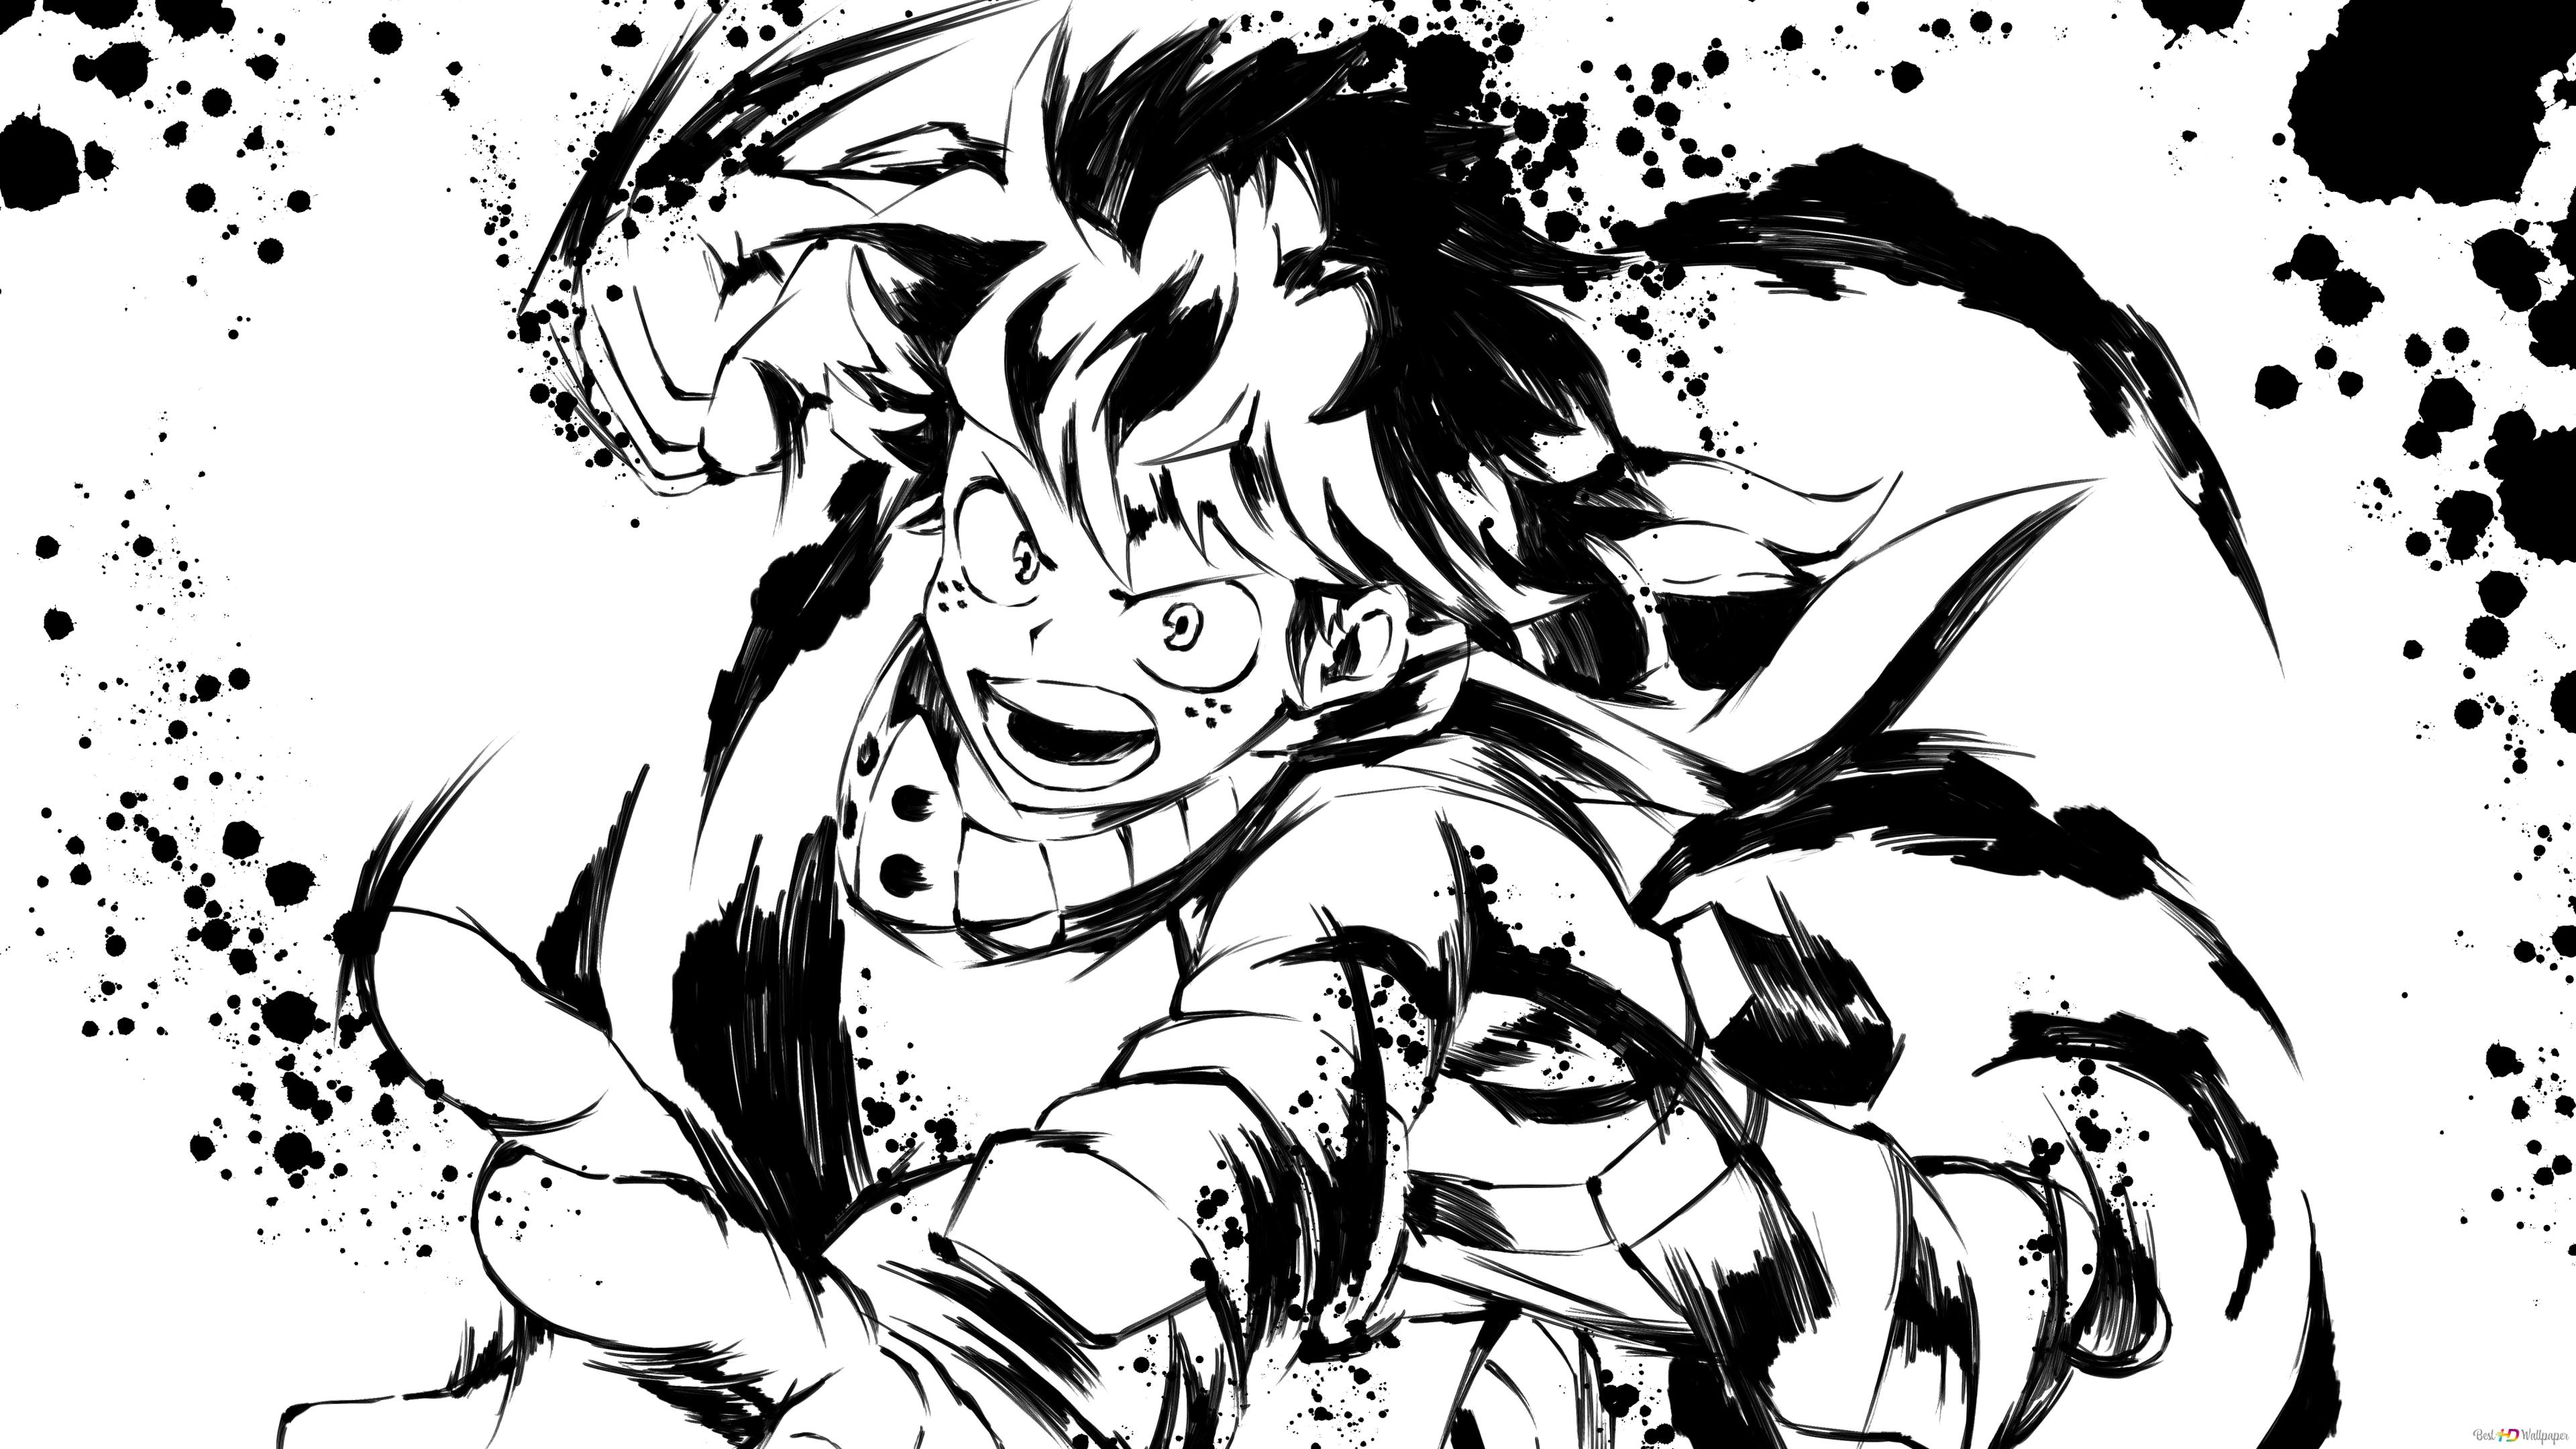 My Hero Academia Izuku Midoriya Black White Art Hd Wallpaper Download